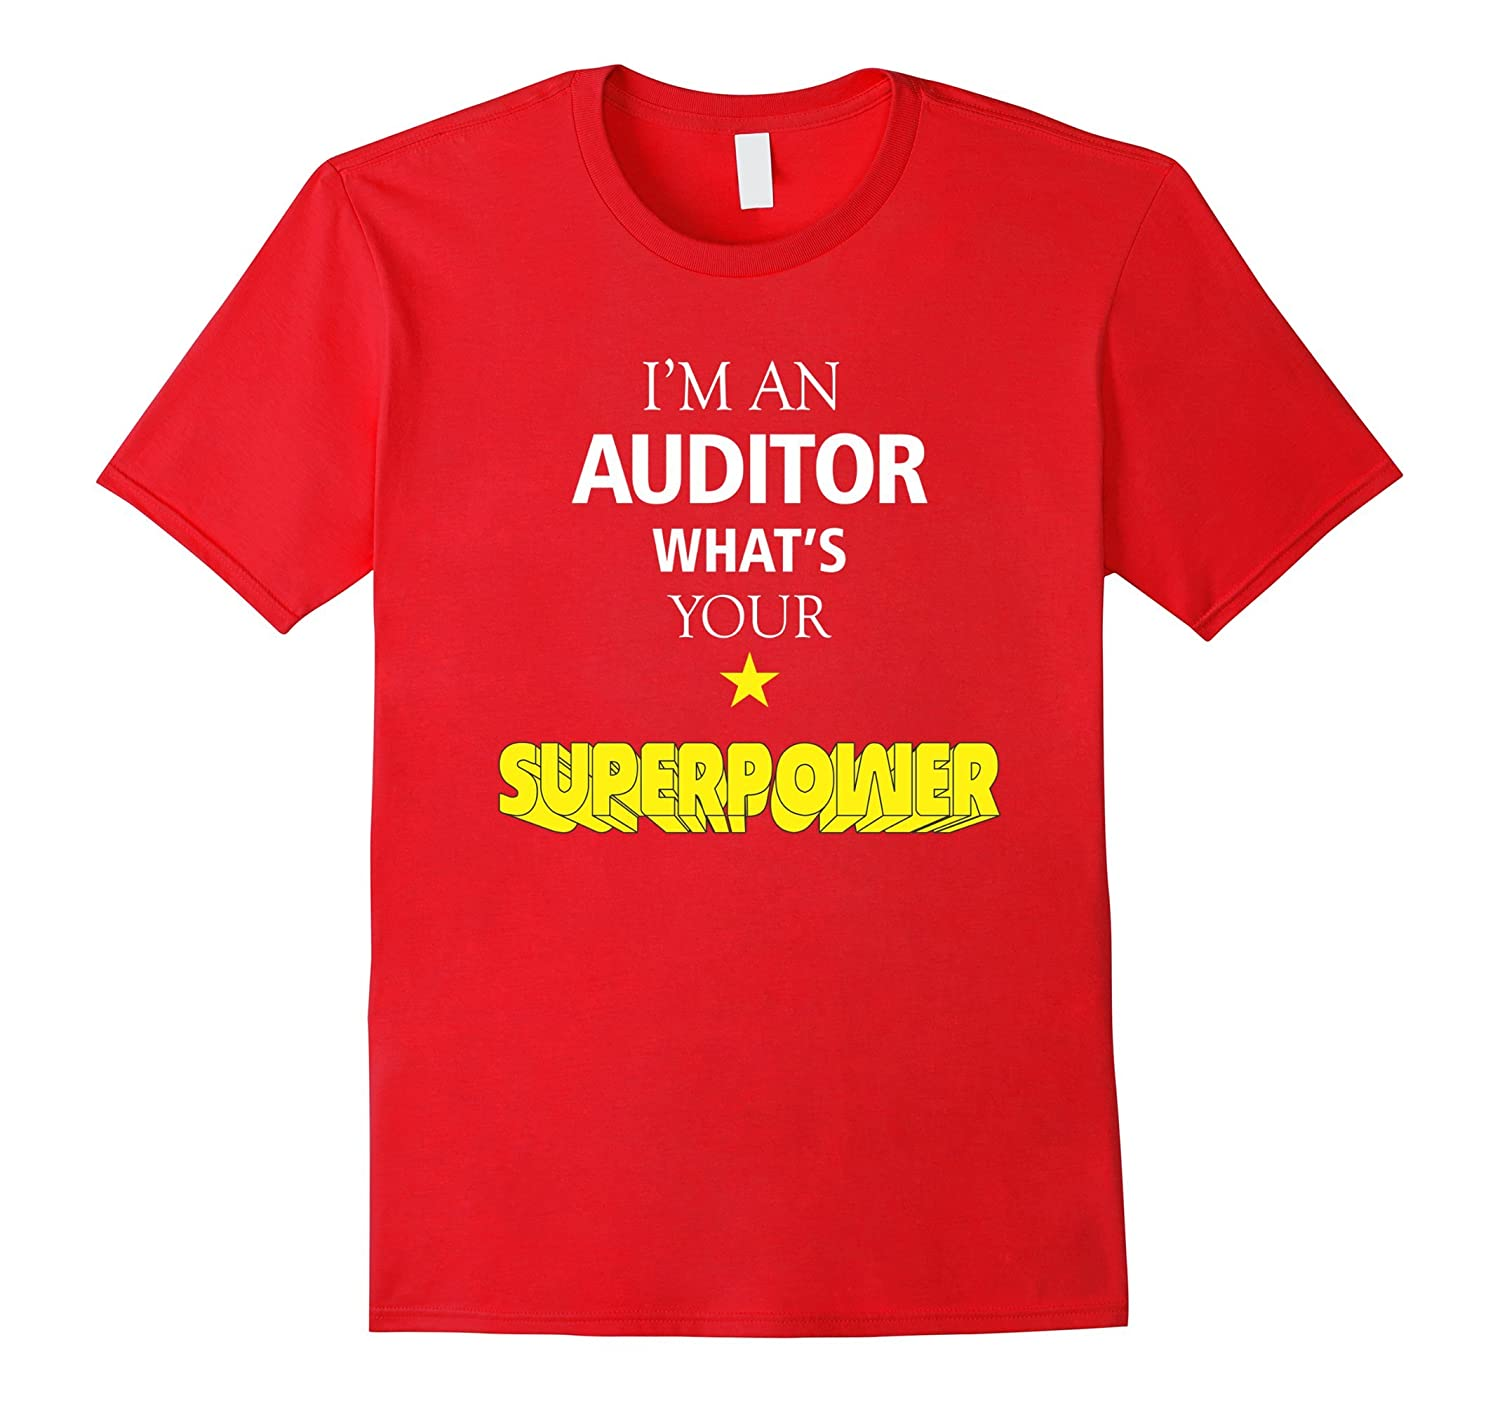 Auditor T-shirt - Im an Auditor whats your superpower-PL